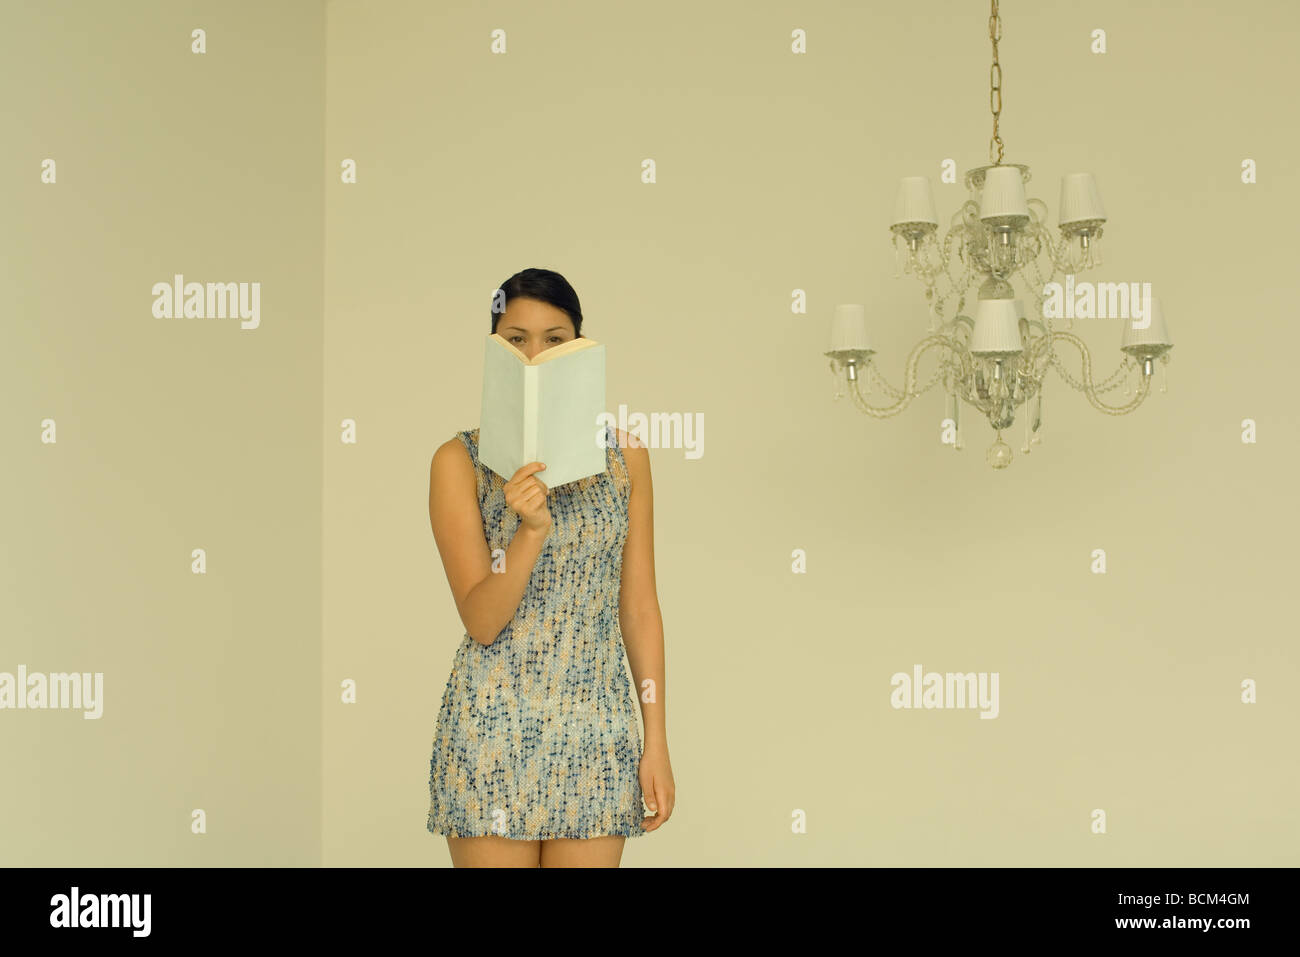 Woman standing beside chandelier, peeking over book at camera - Stock Image